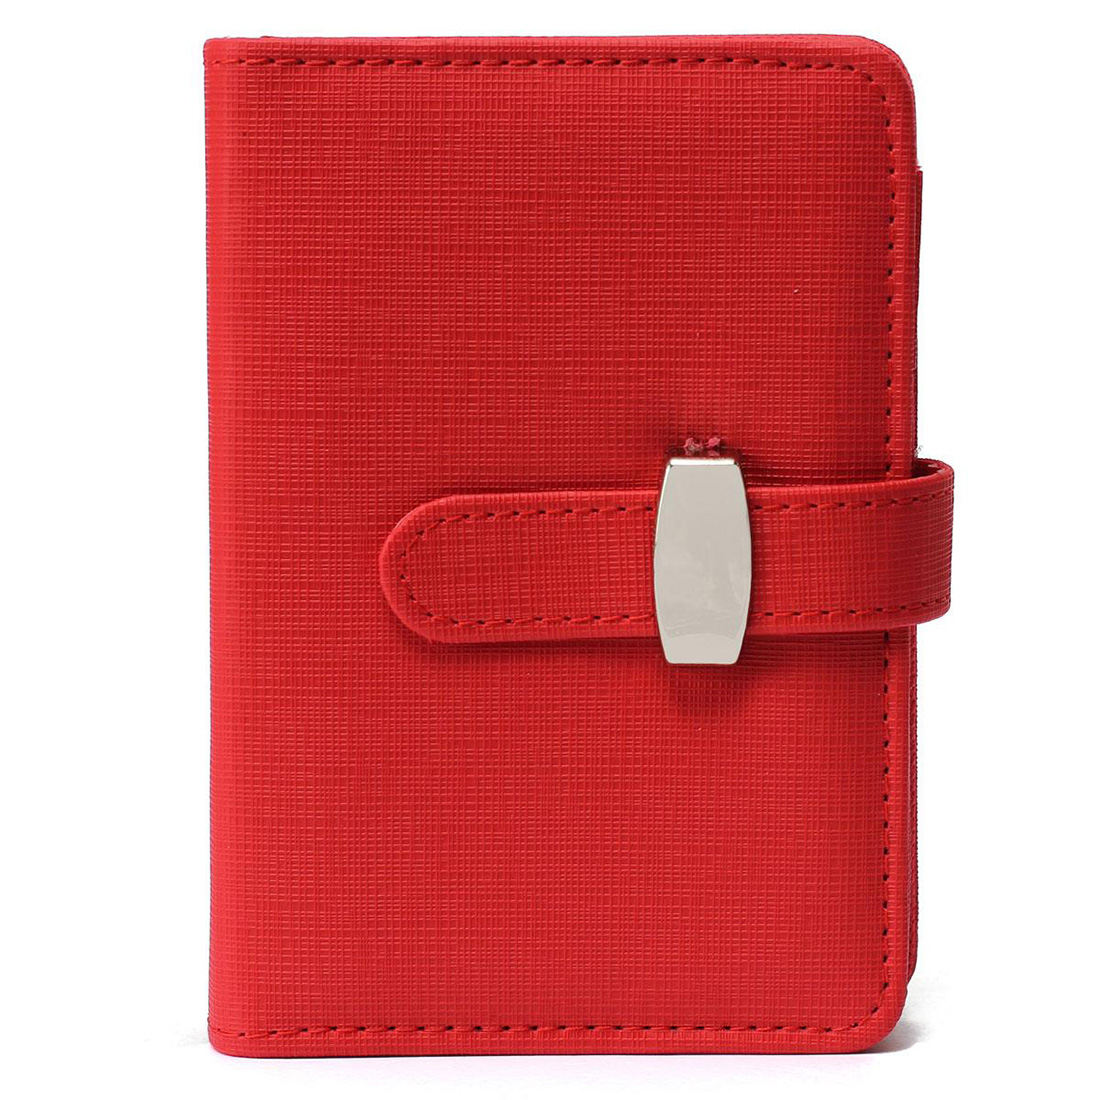 Modern Design A7 Personal Organiser Planner PU Leather Cover Diary Notebook School Office Stationery 4 Color